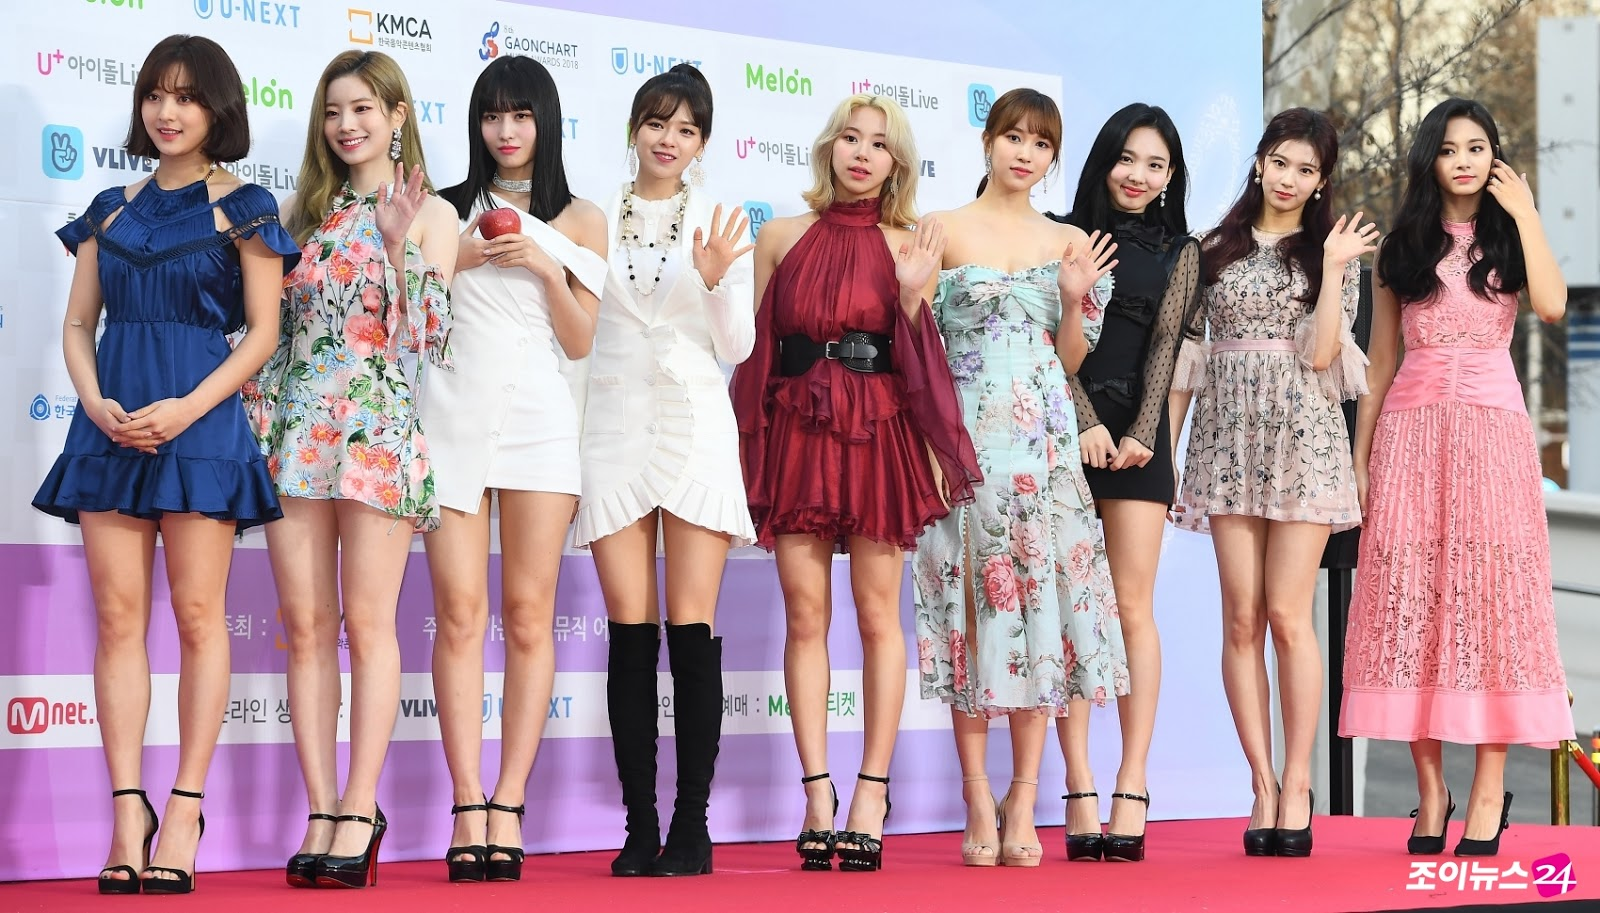 TWICE's Momo Appears at the Gaon Chart Music Awards with an